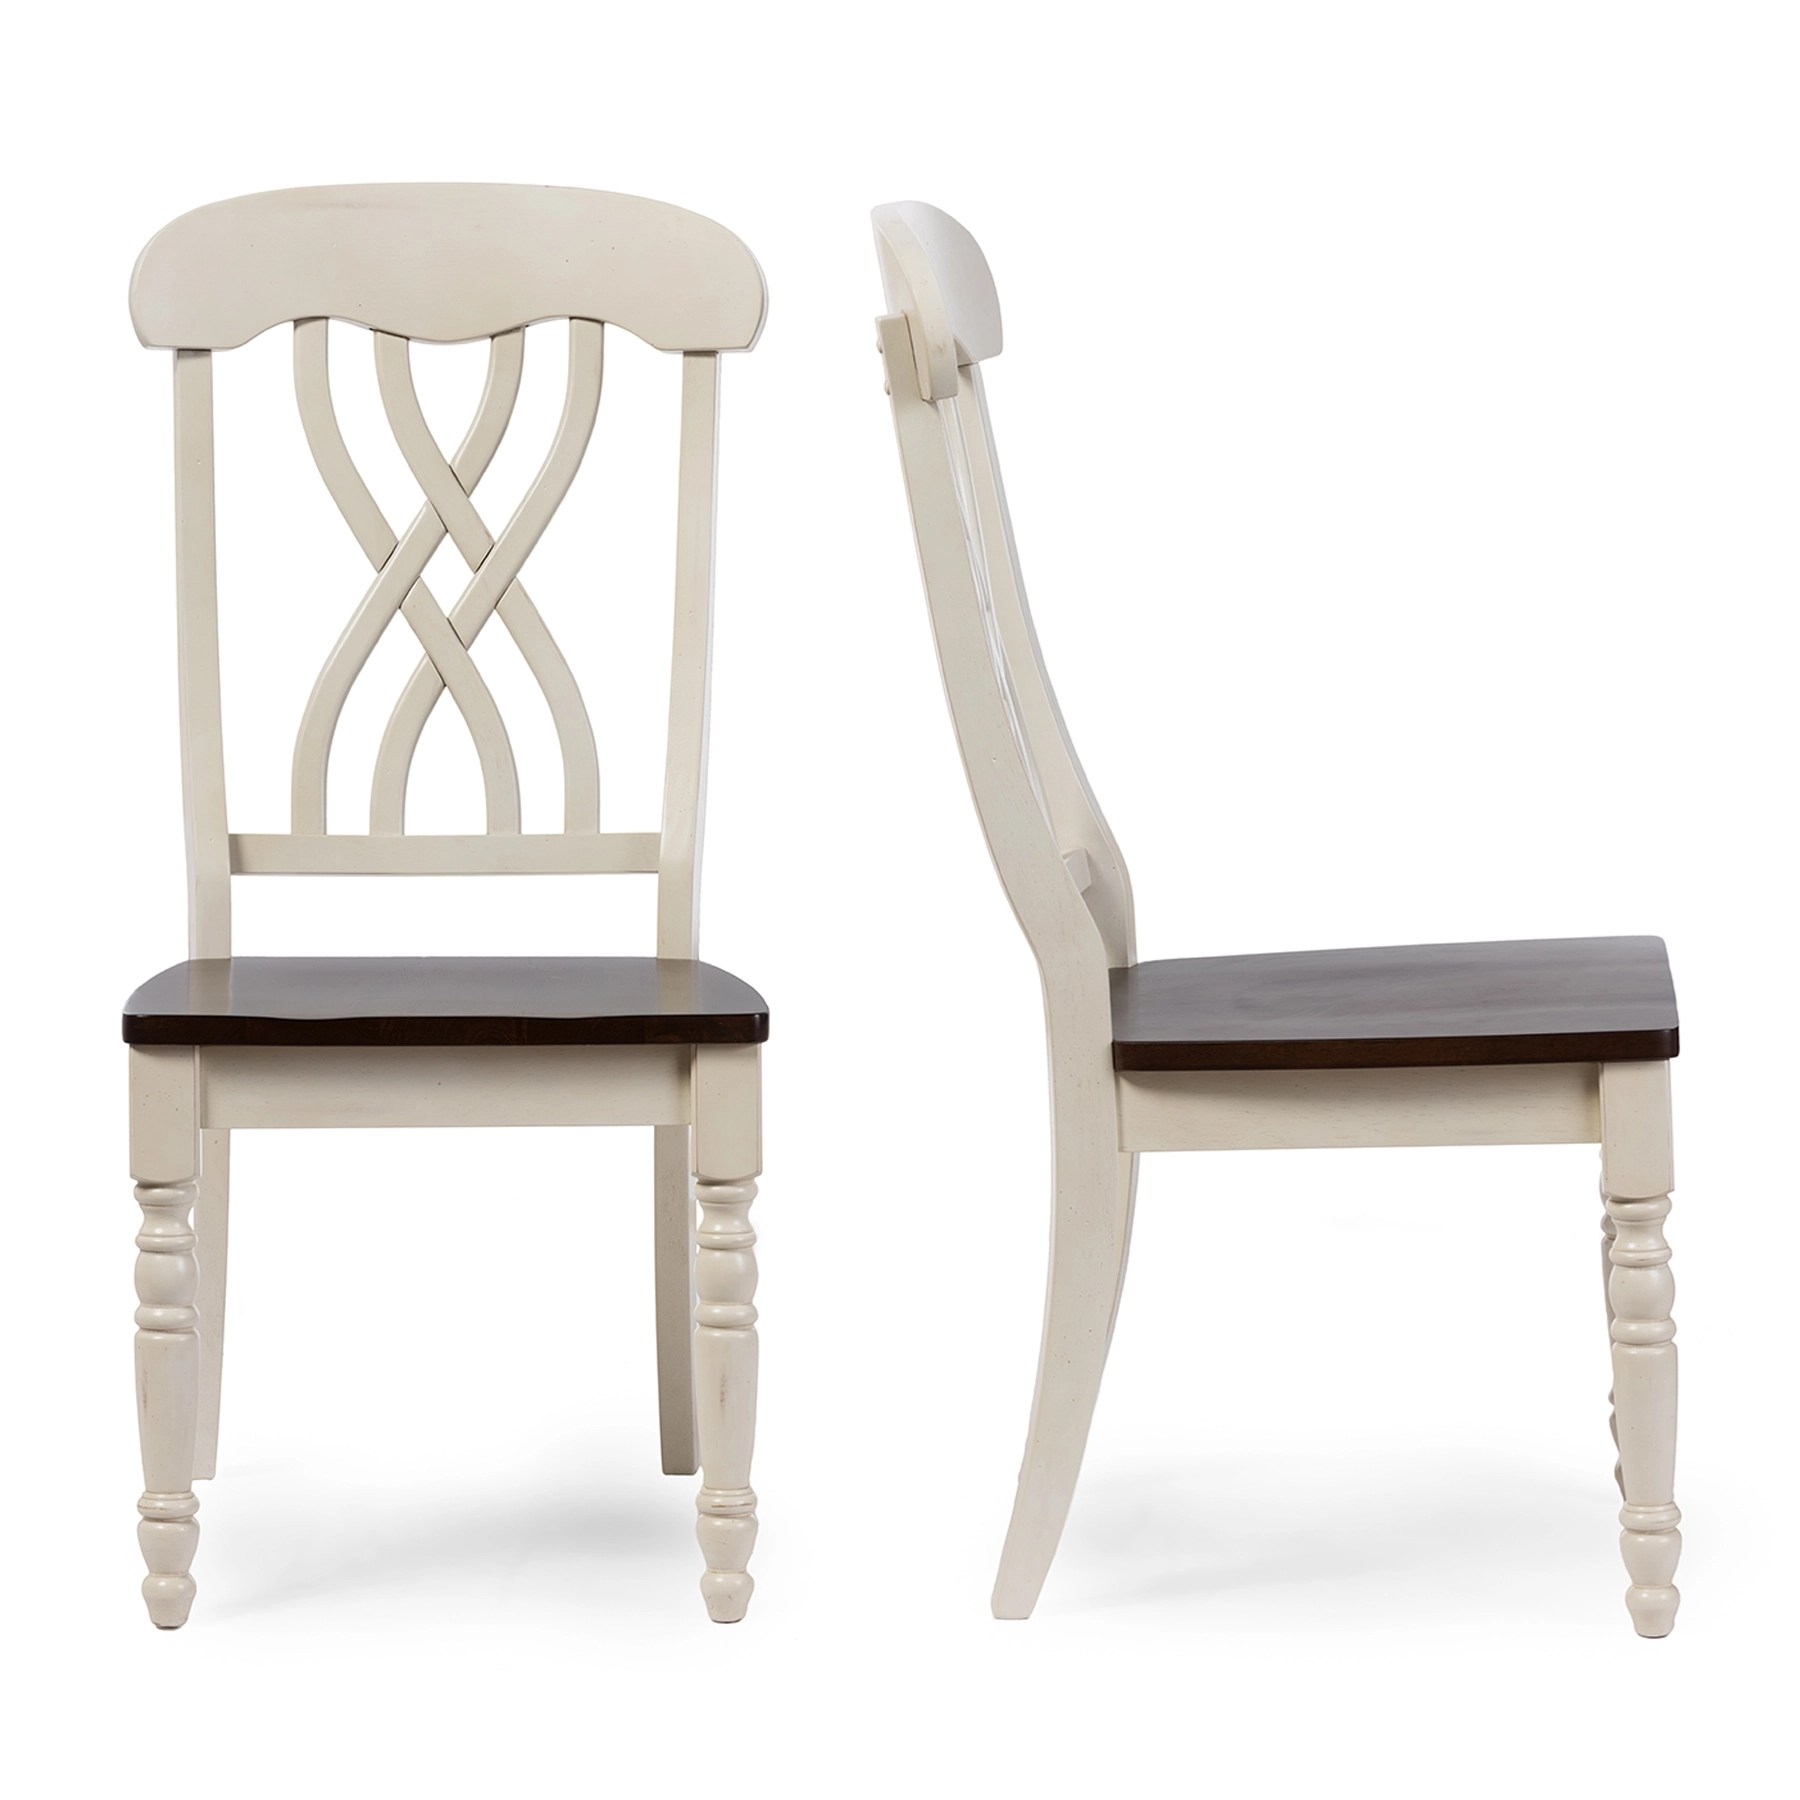 Distressed White Dining Chairs Baxton Studio Newman Chic Country Cottage Antique Oak Wood